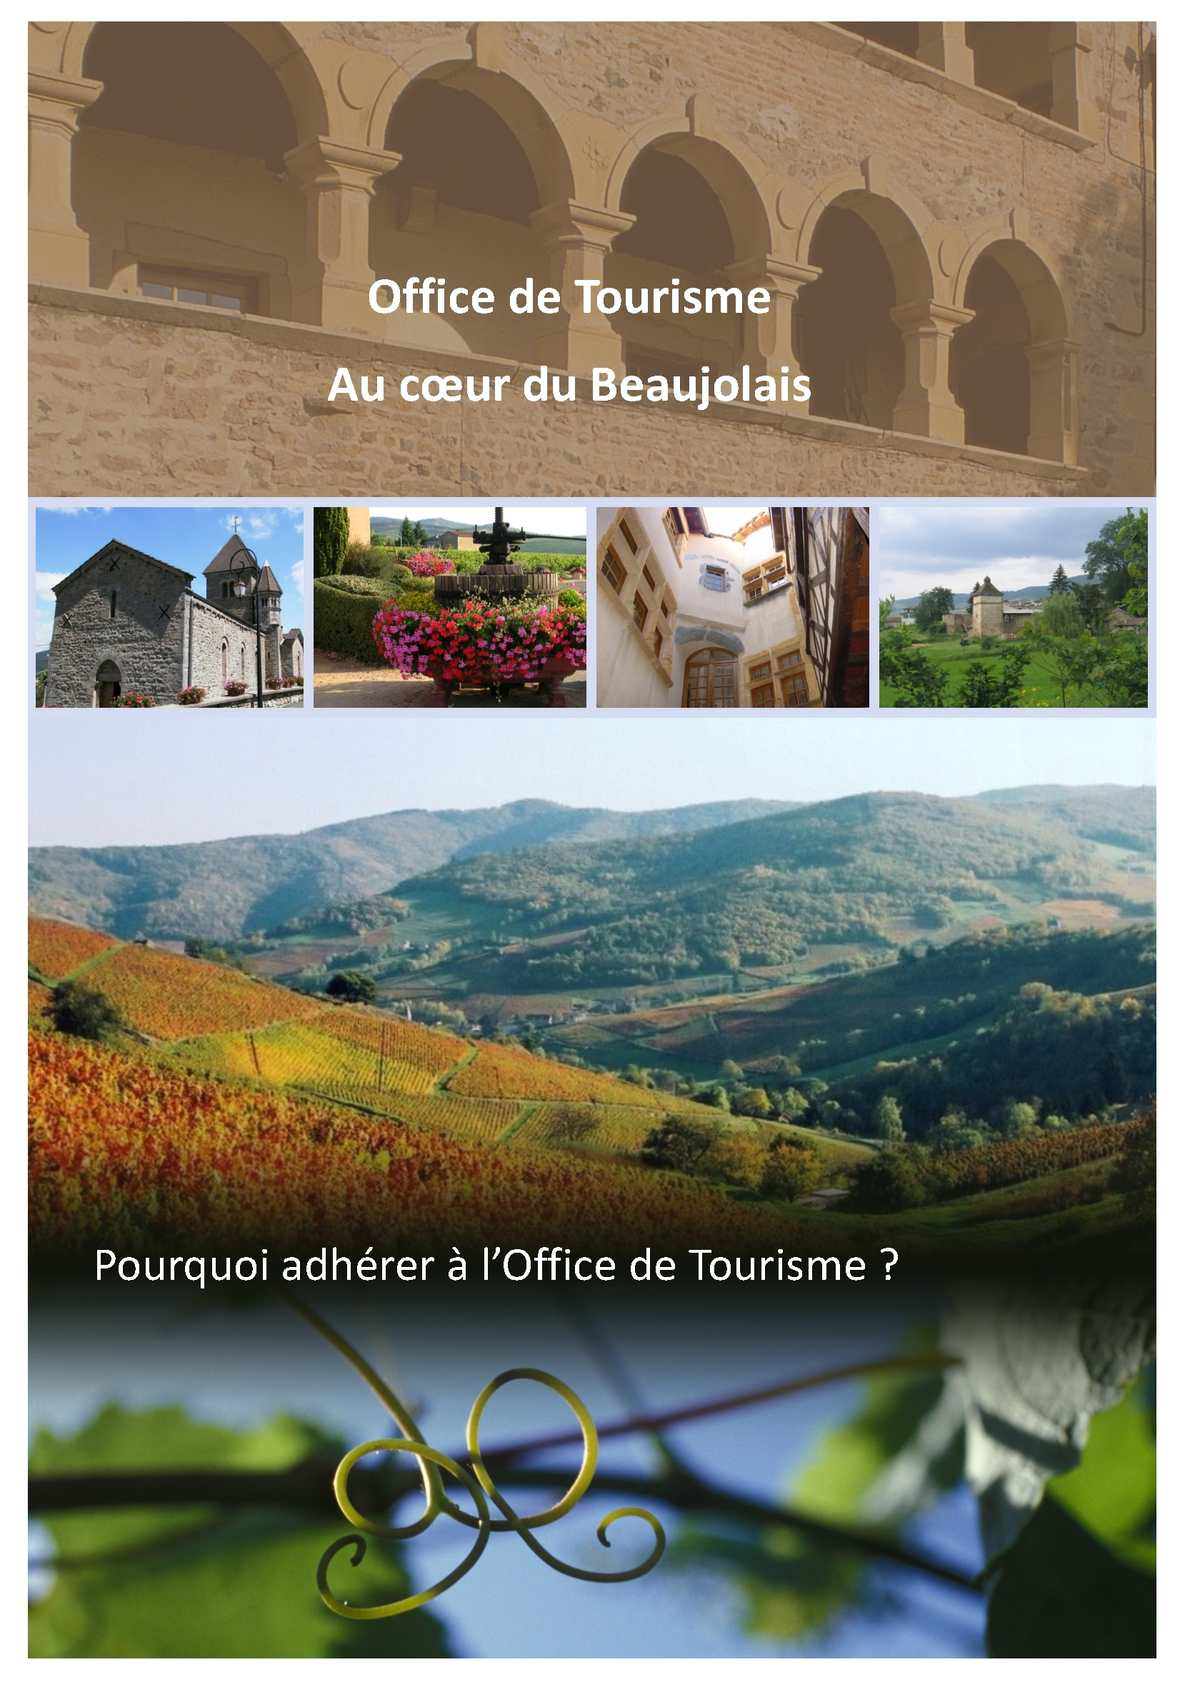 Calam o guide de l 39 adh rent office de tourisme au coeur du beaujolais - Office de tourisme d amsterdam ...